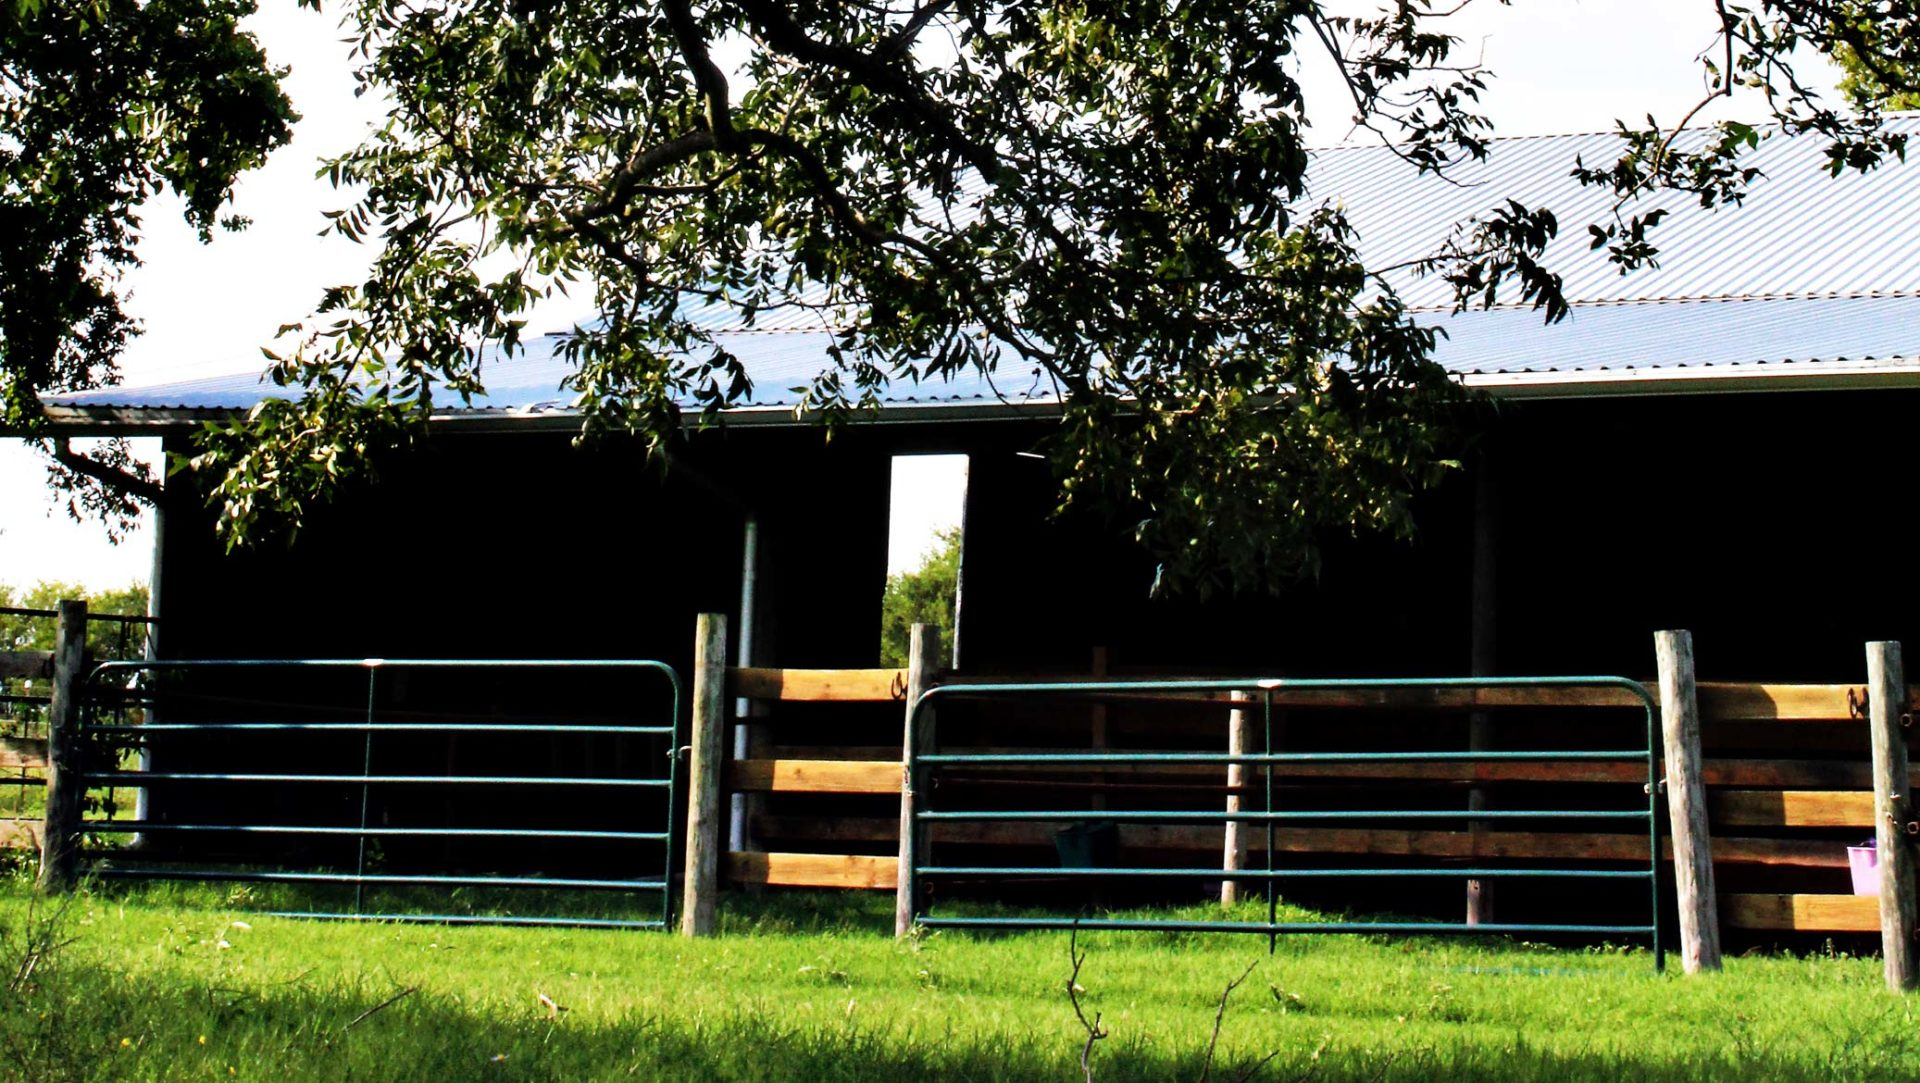 Guarded Heart Farm Horse Boarding & Equestrian Center